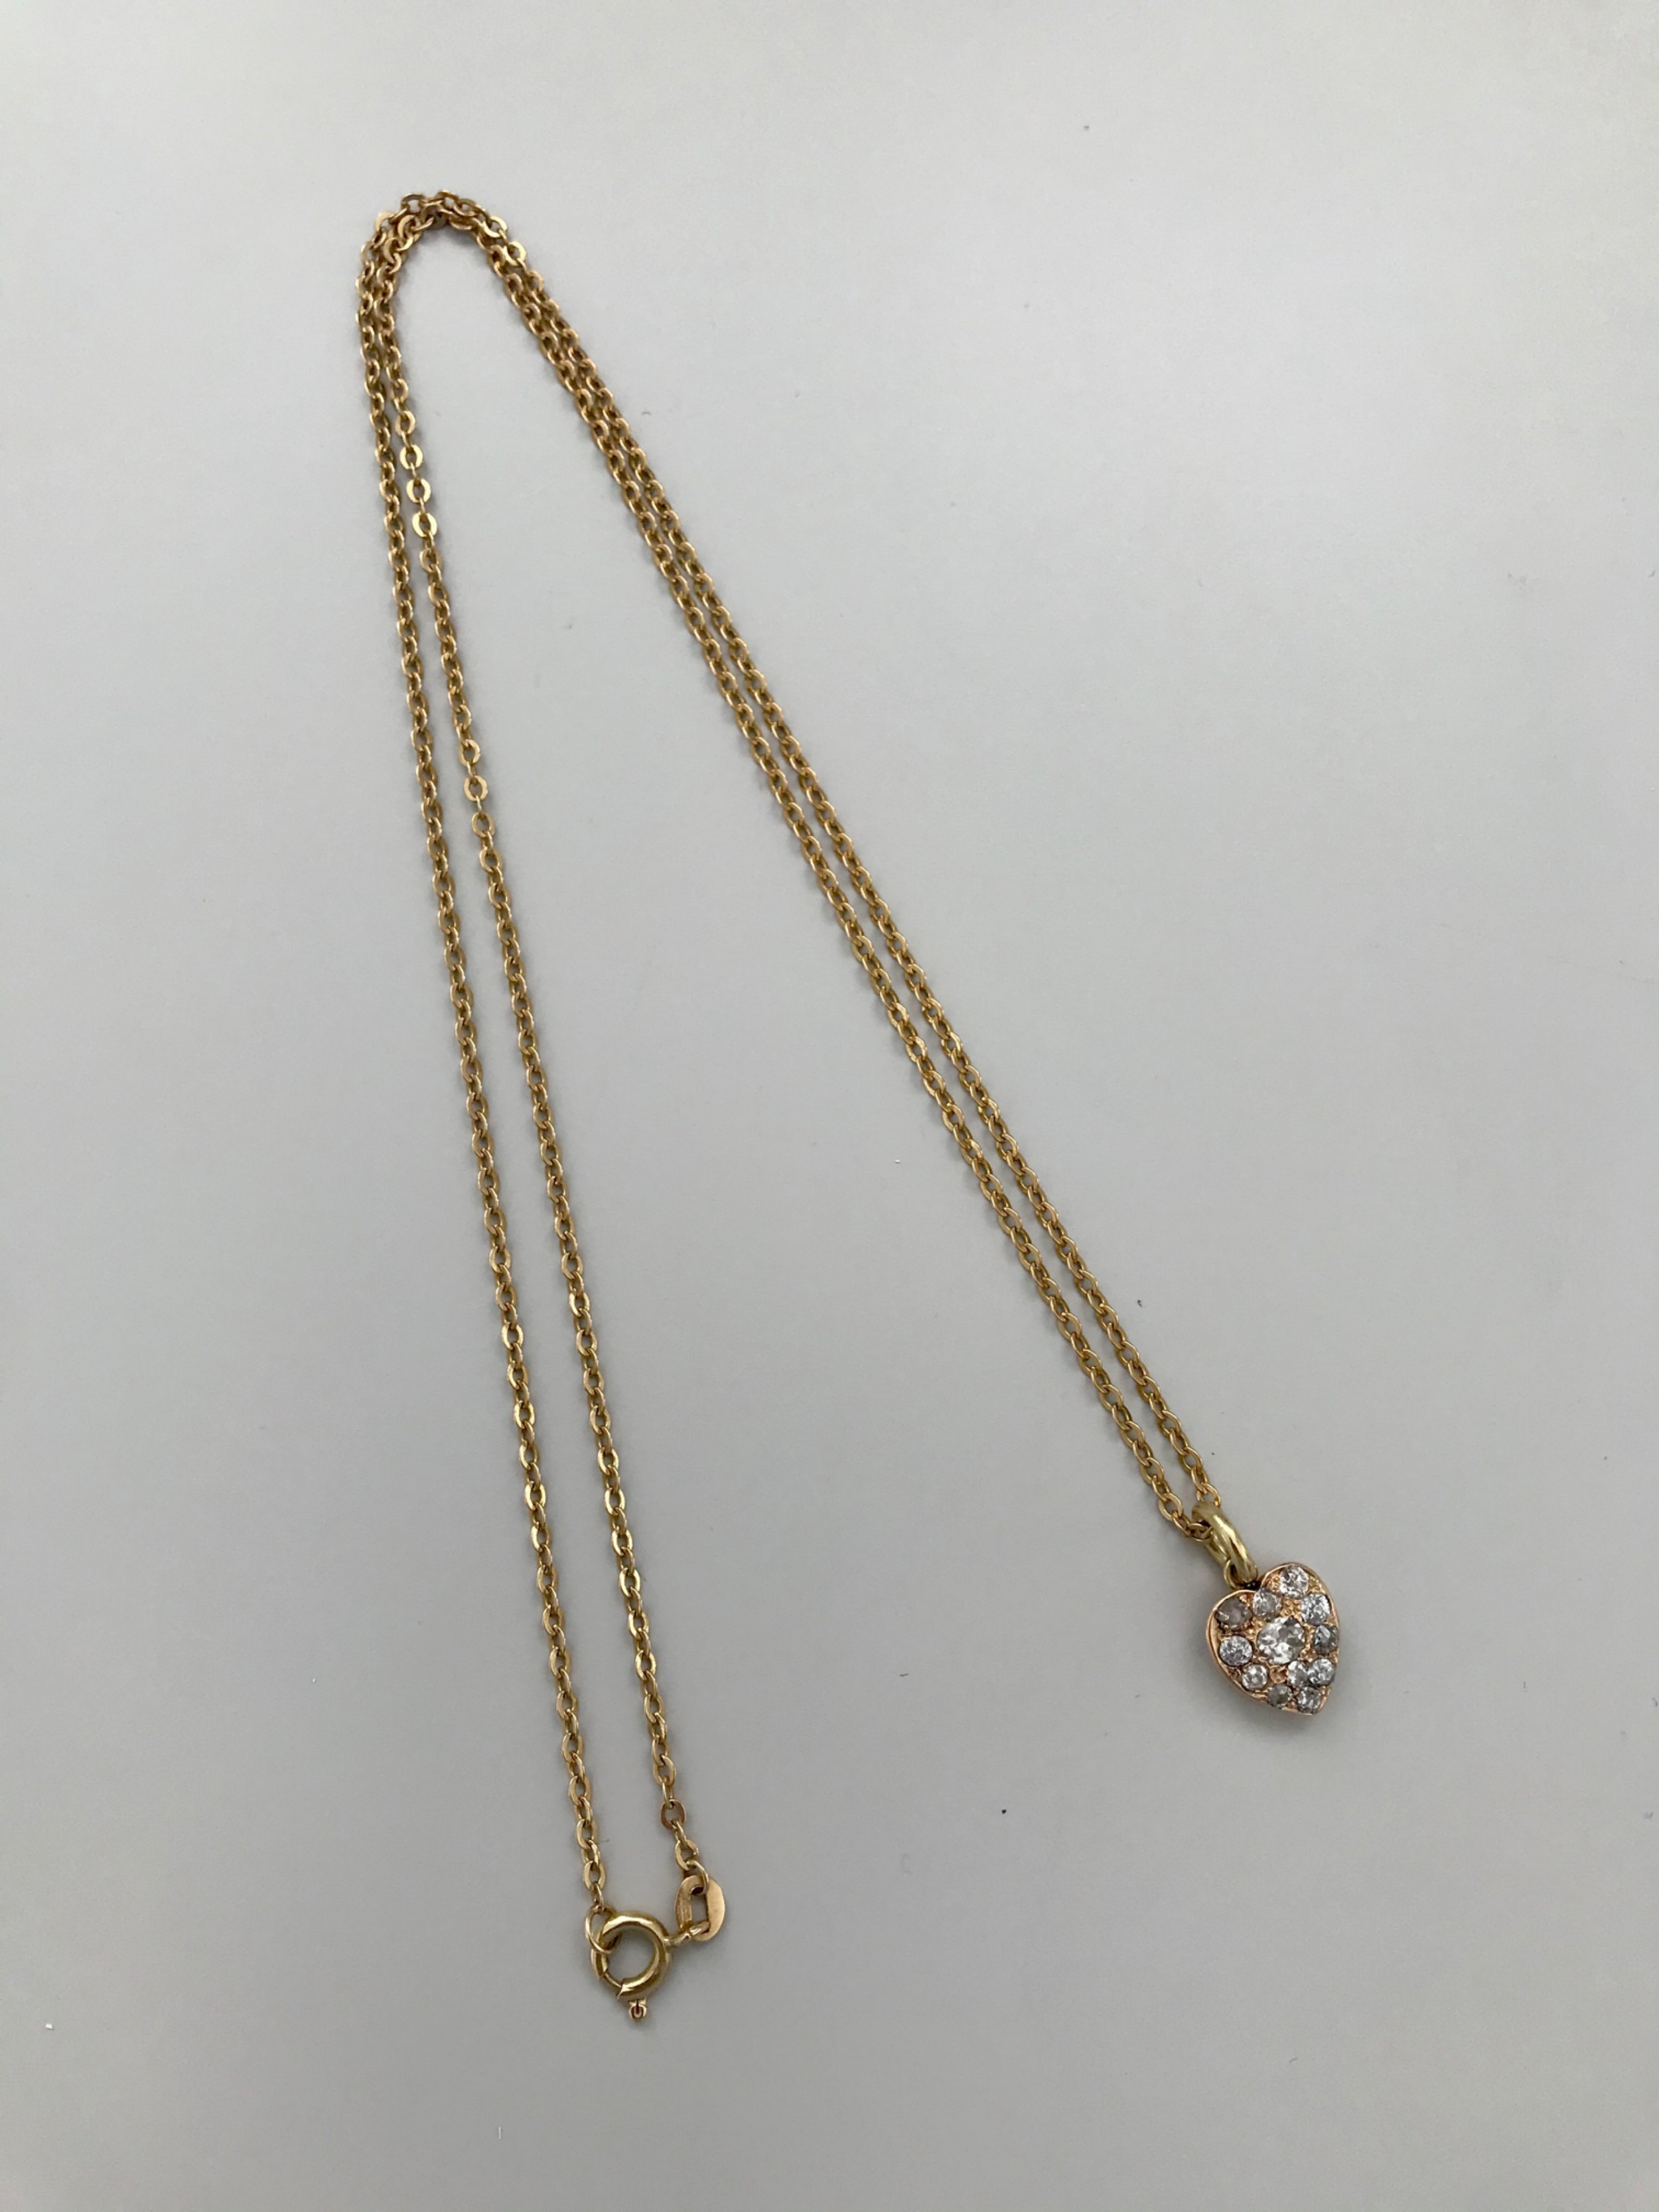 18 ct late victorian yellow gold diamond heart necklace